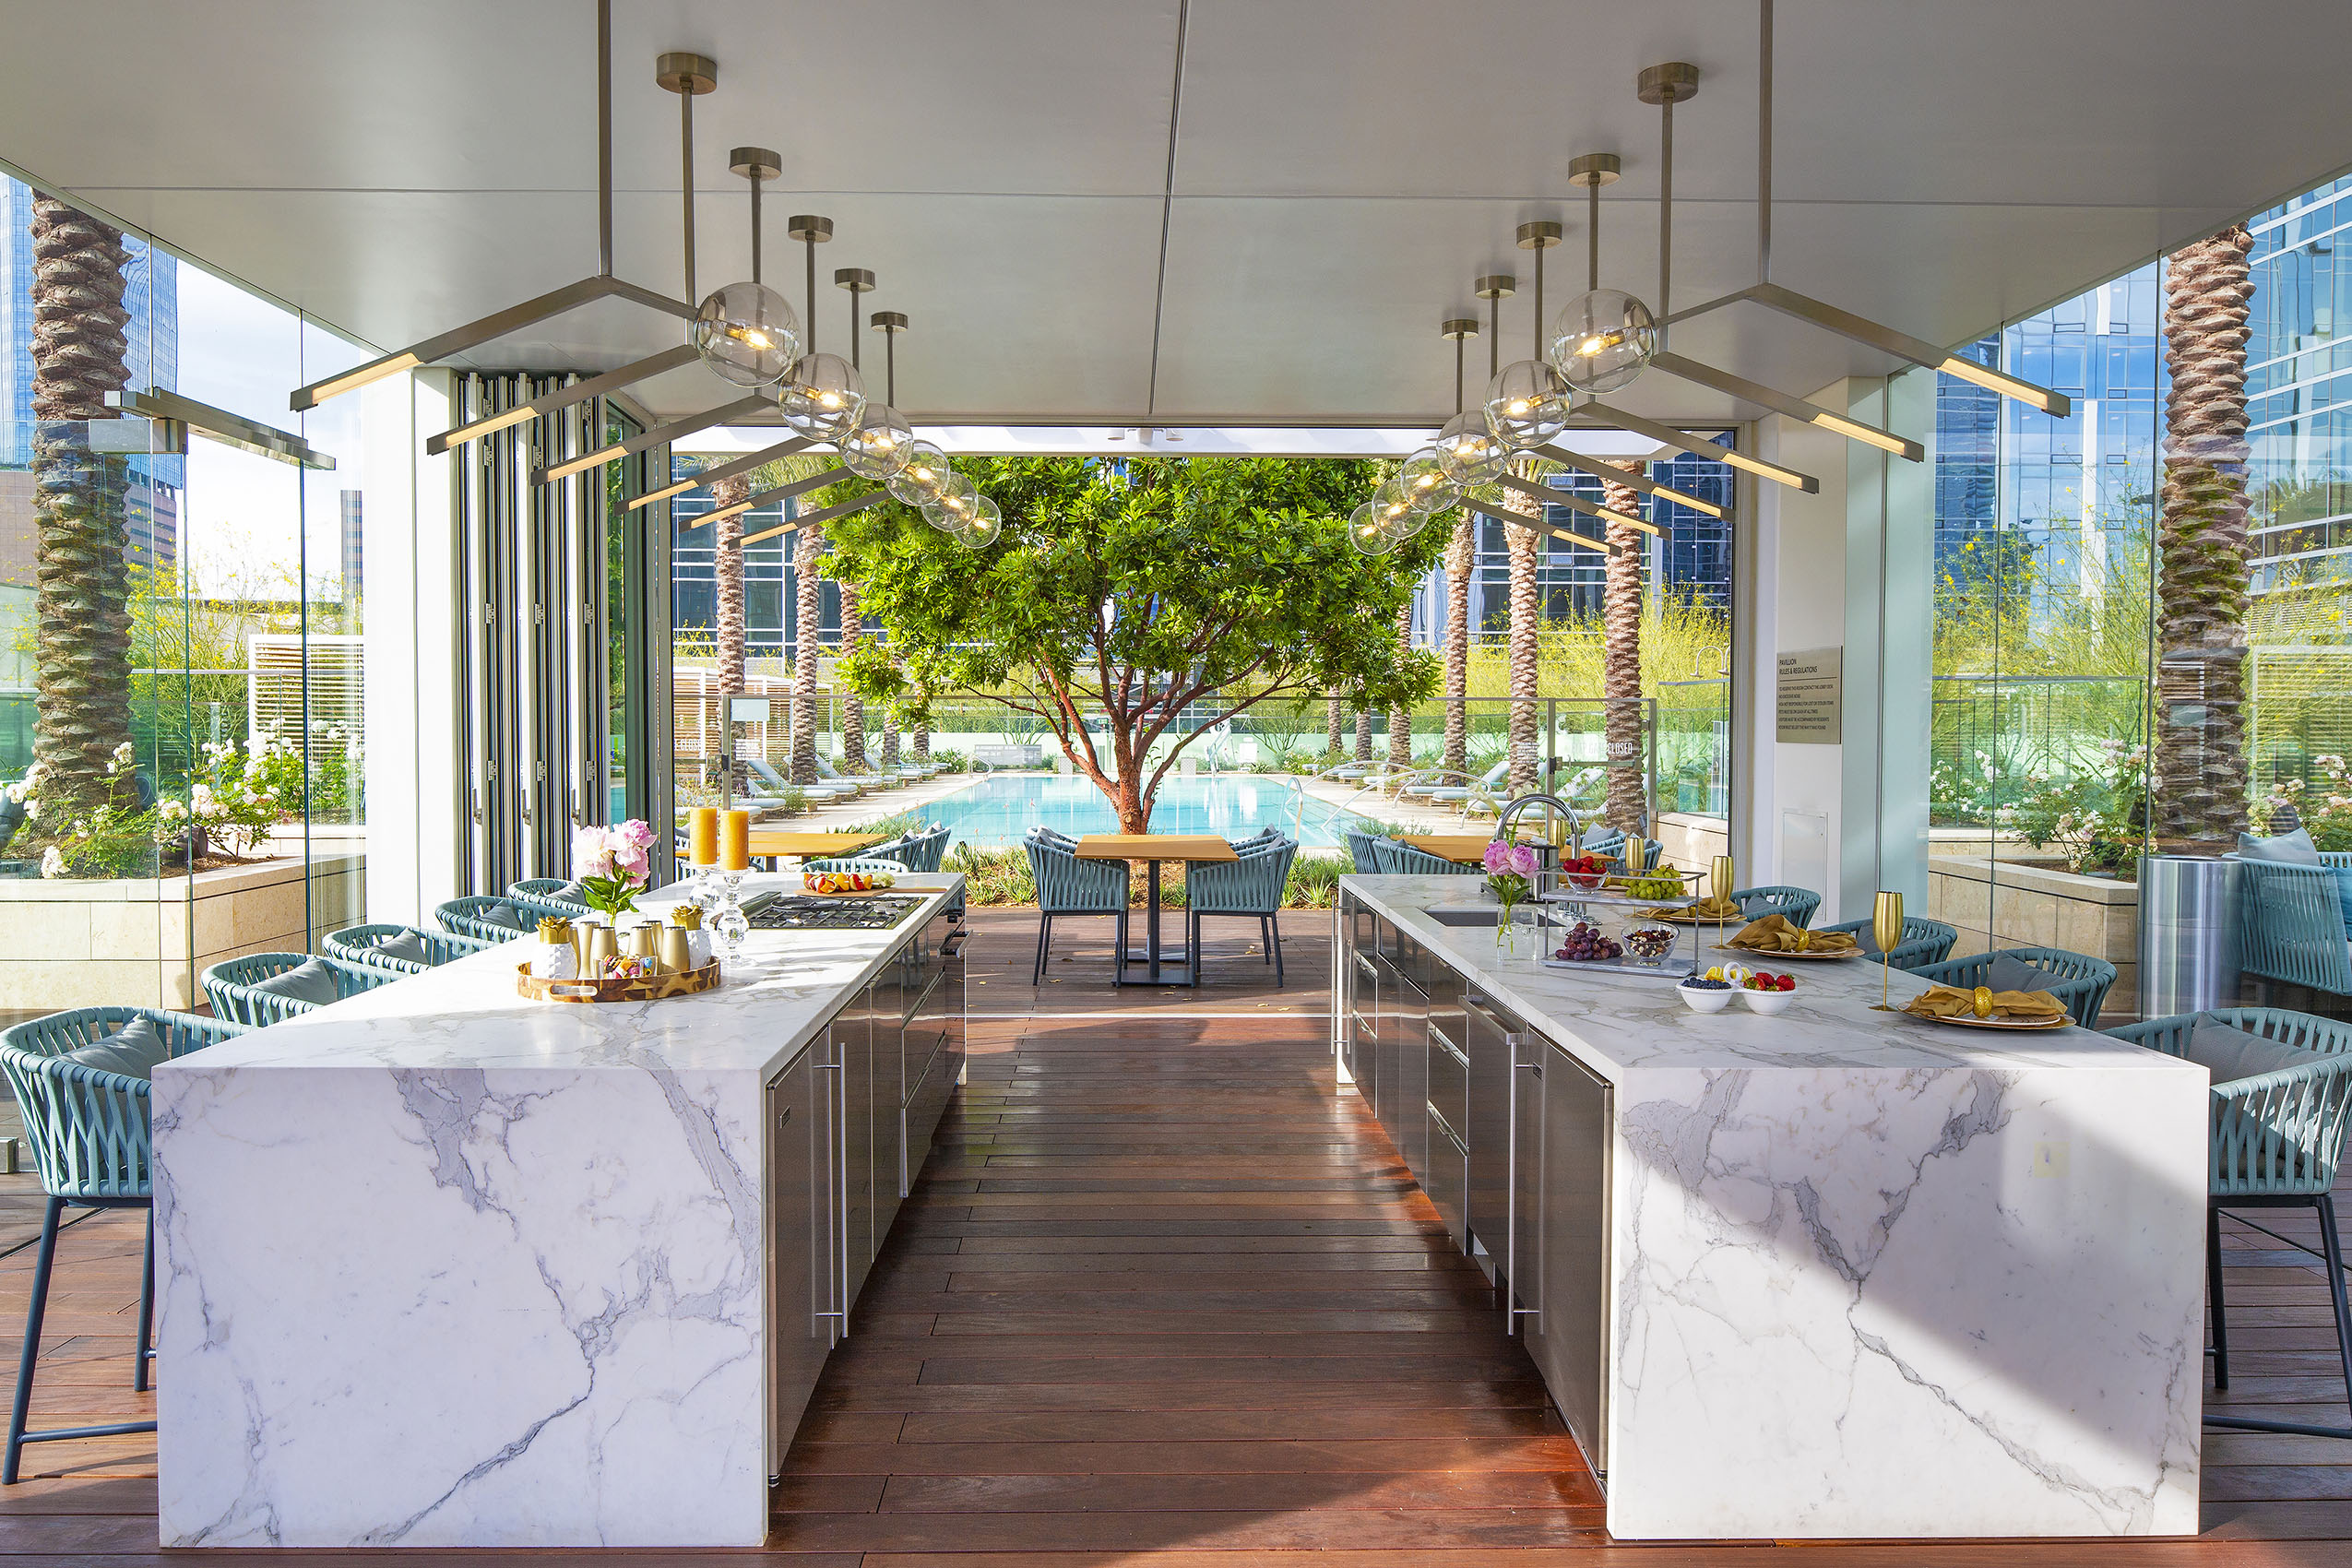 Residences in Downtown Los Angeles for Rent - THEA at Metropolis Luxurious Pool Pavilion with Catering Kitchen and Ample Seating